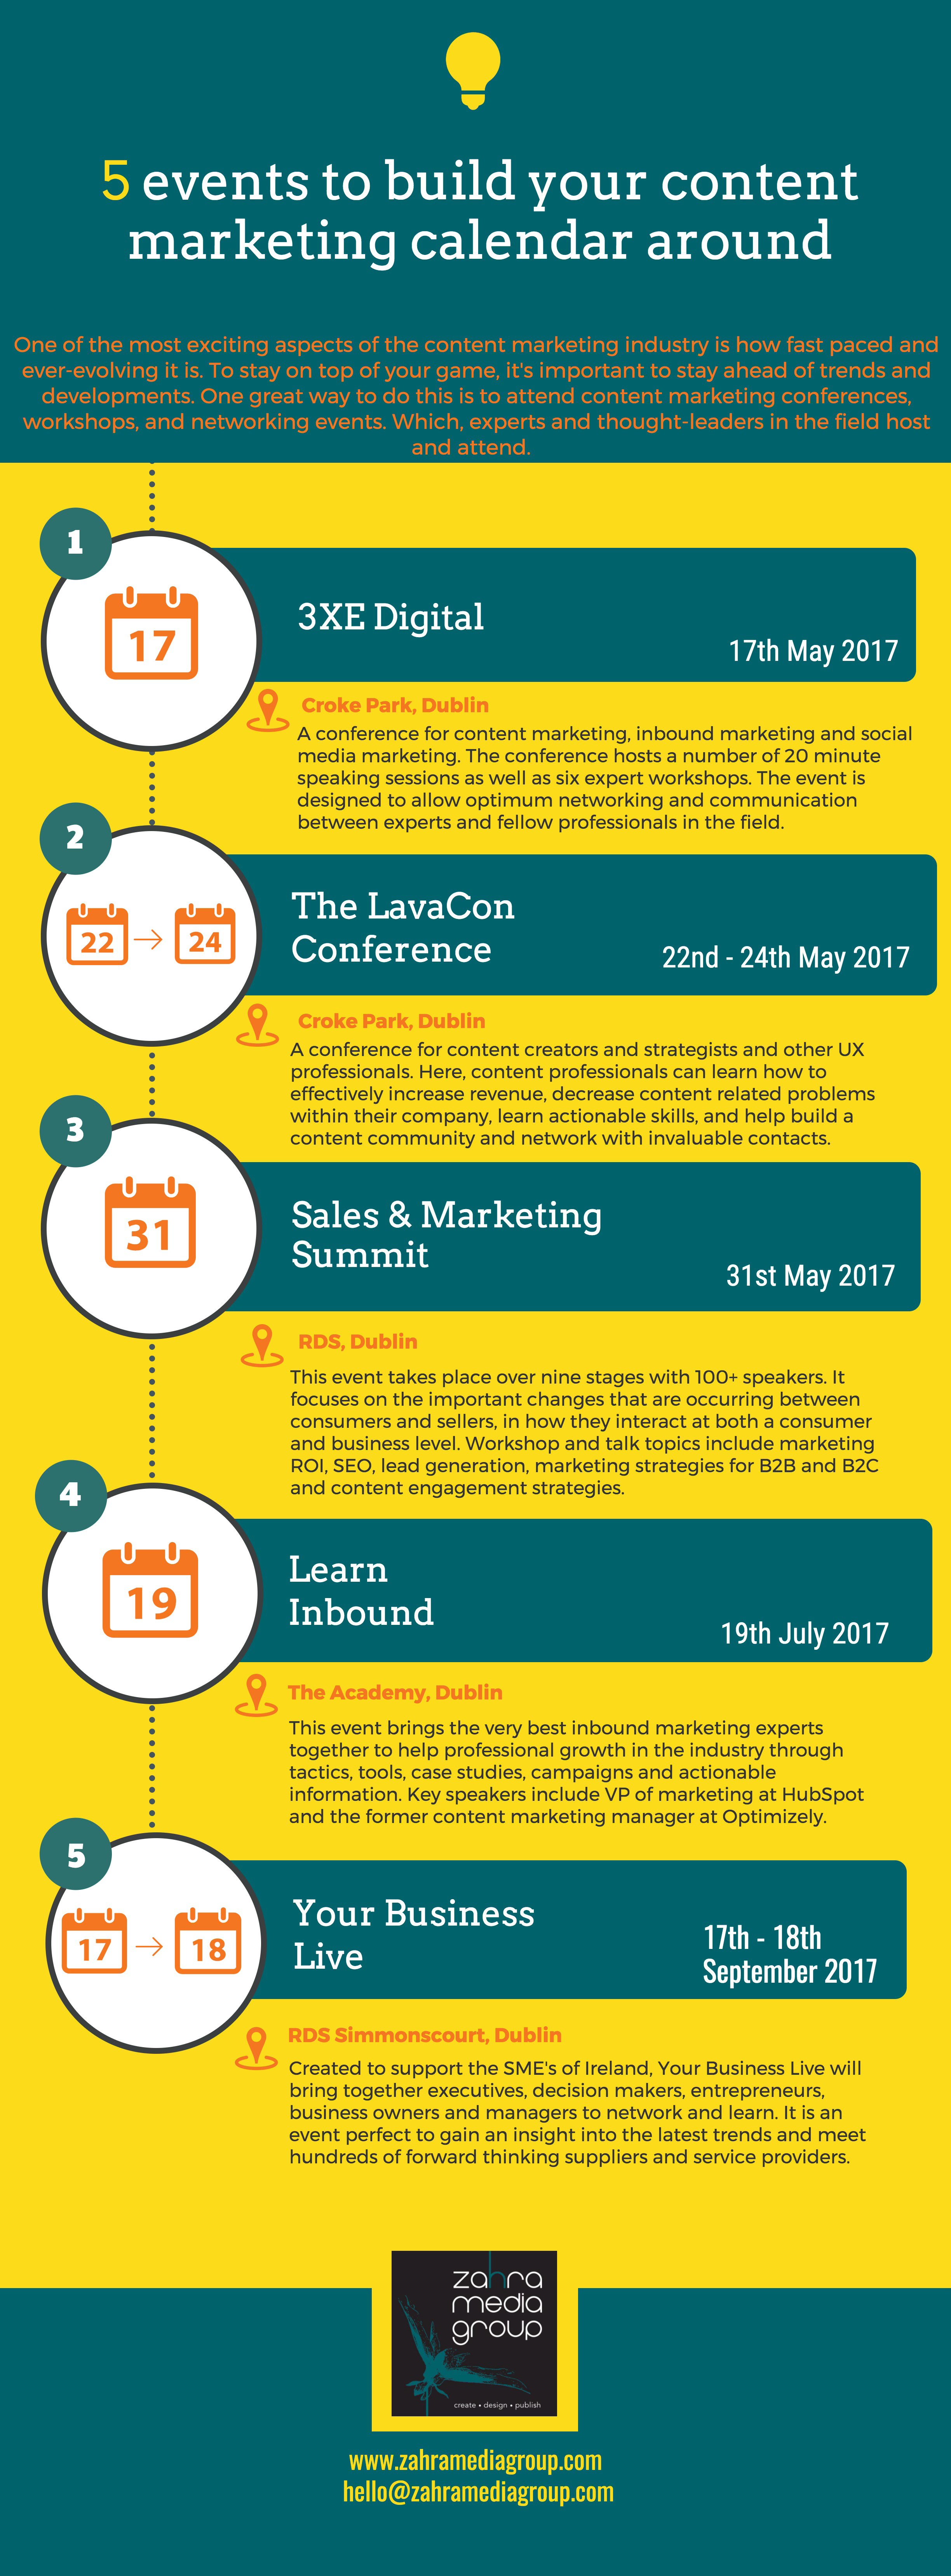 5 events to build your content marketing calendar around (infographic)